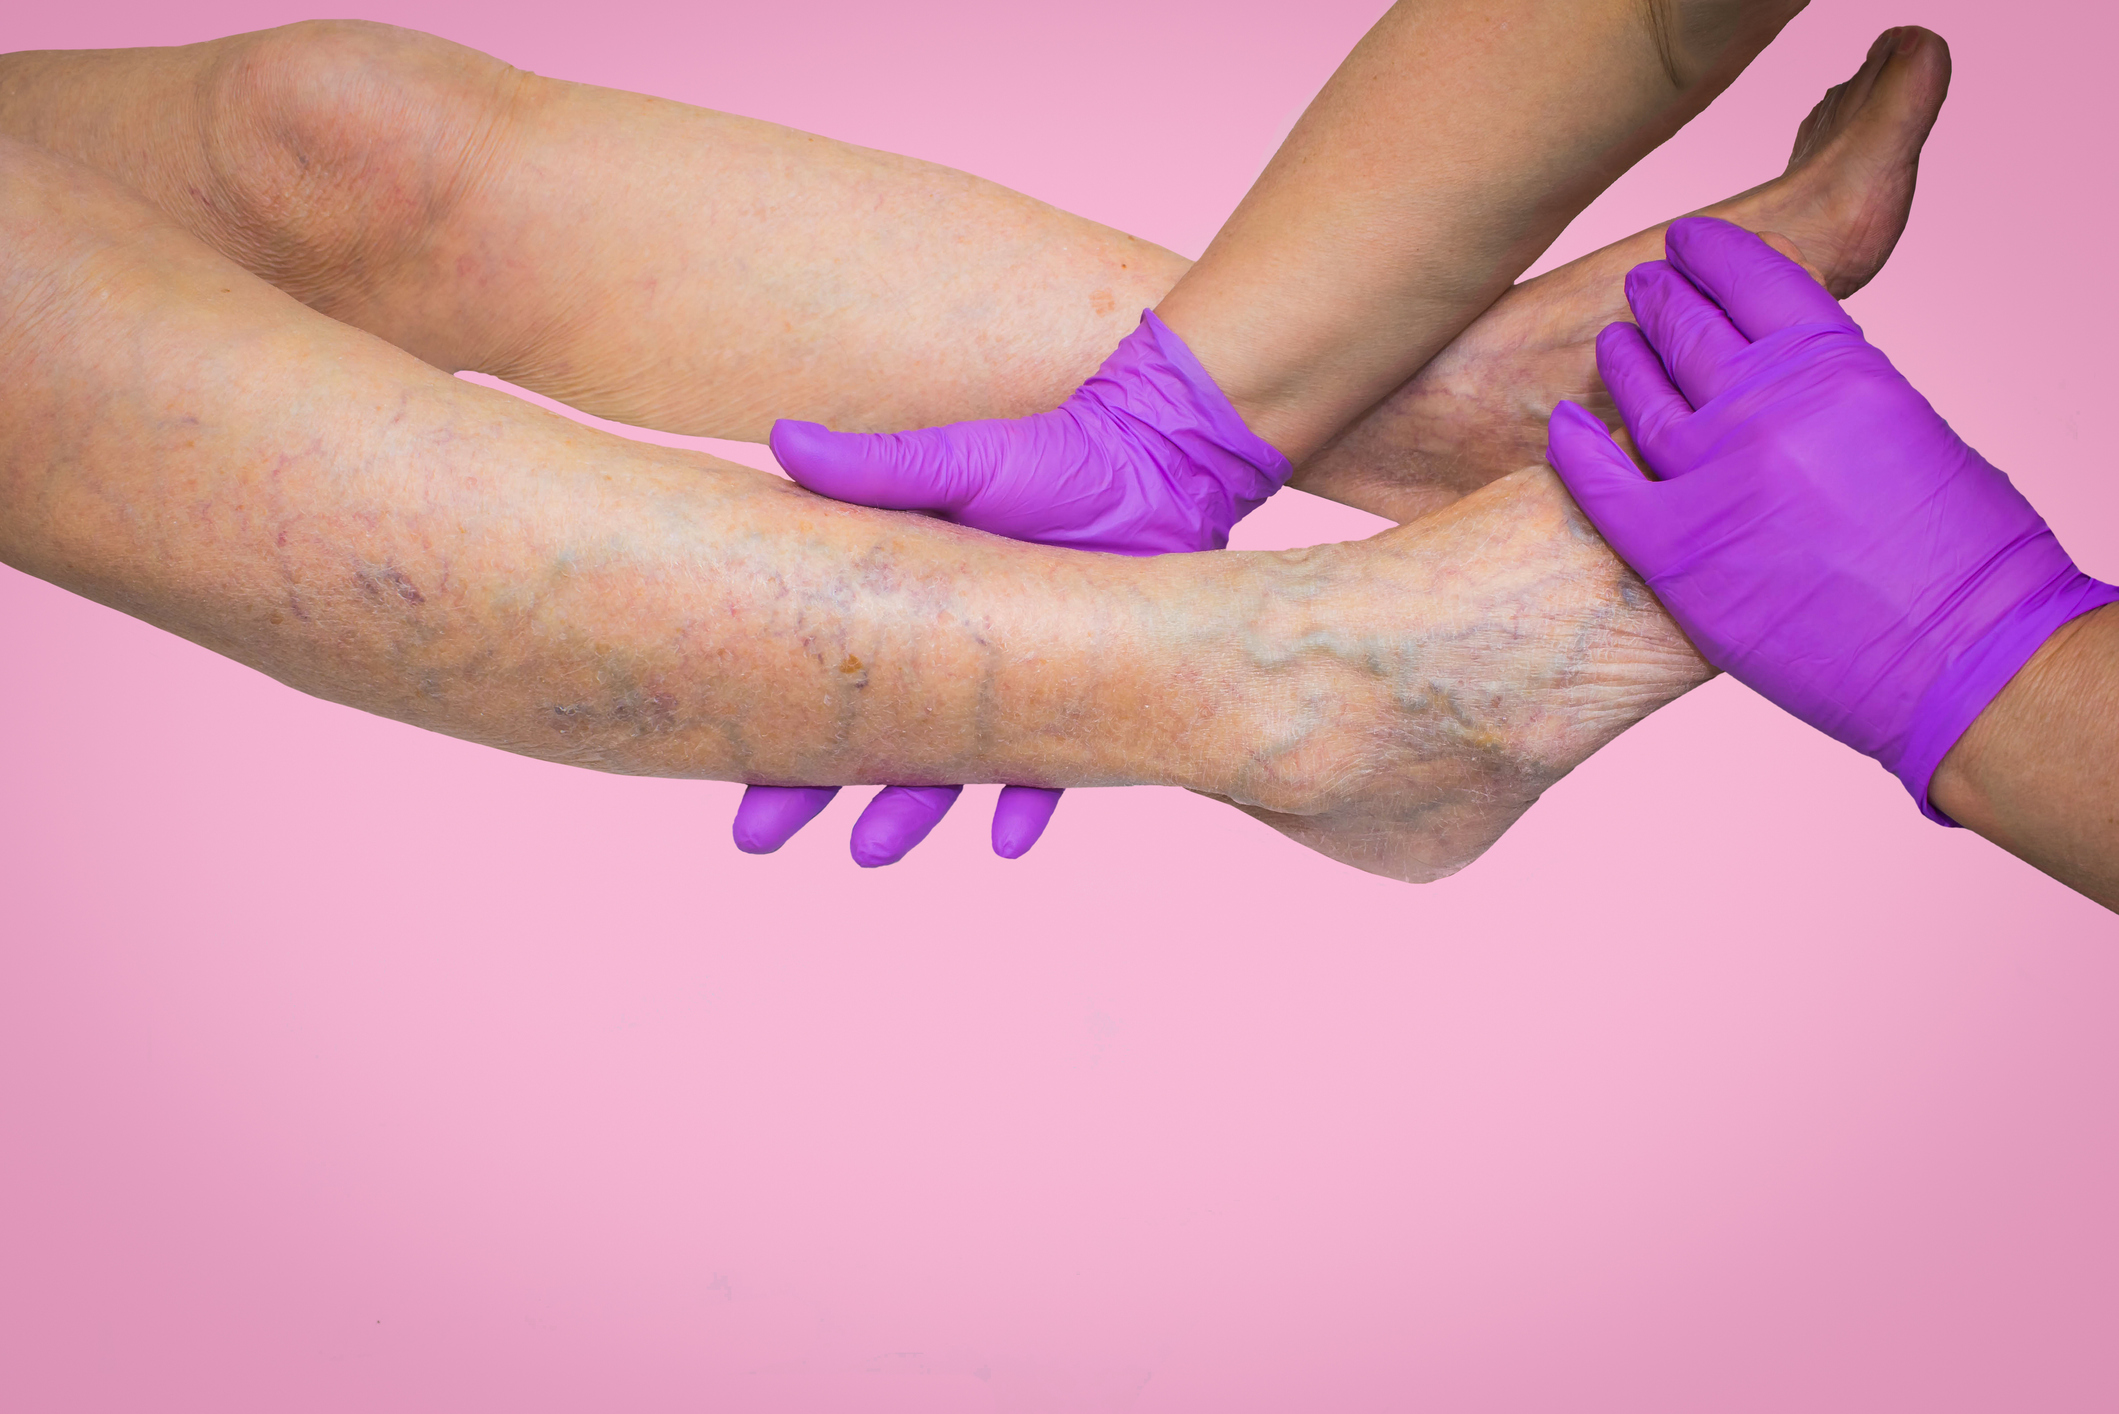 Venous insufficiency resulting in varicose, spider and reticular veins